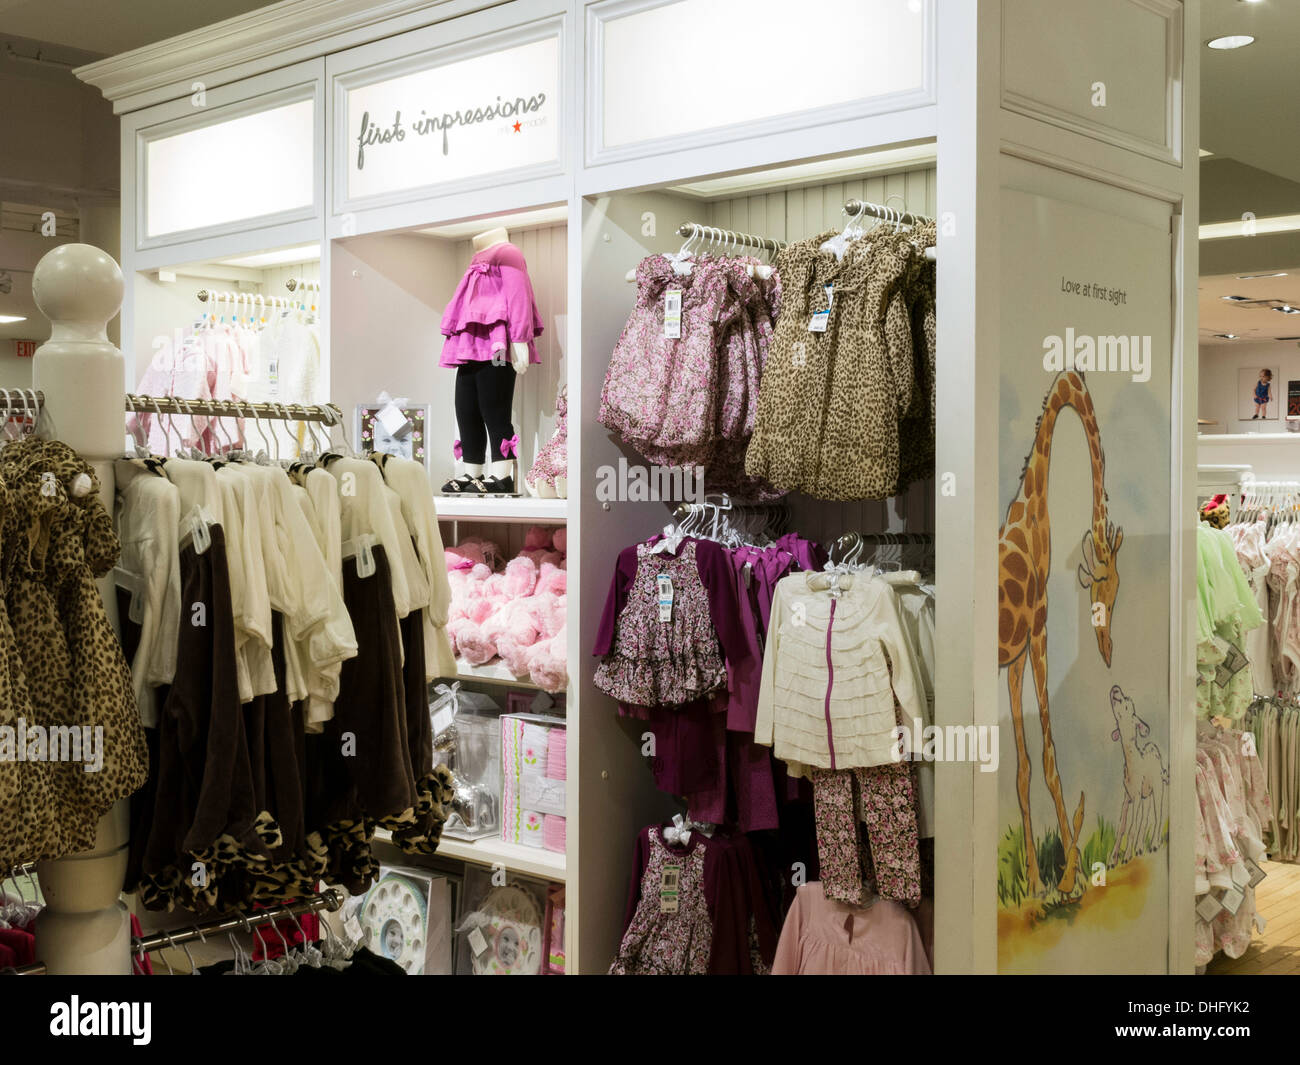 08d0a3db7 First Impressions Baby Clothes in Macy's Flagship Department Store ...